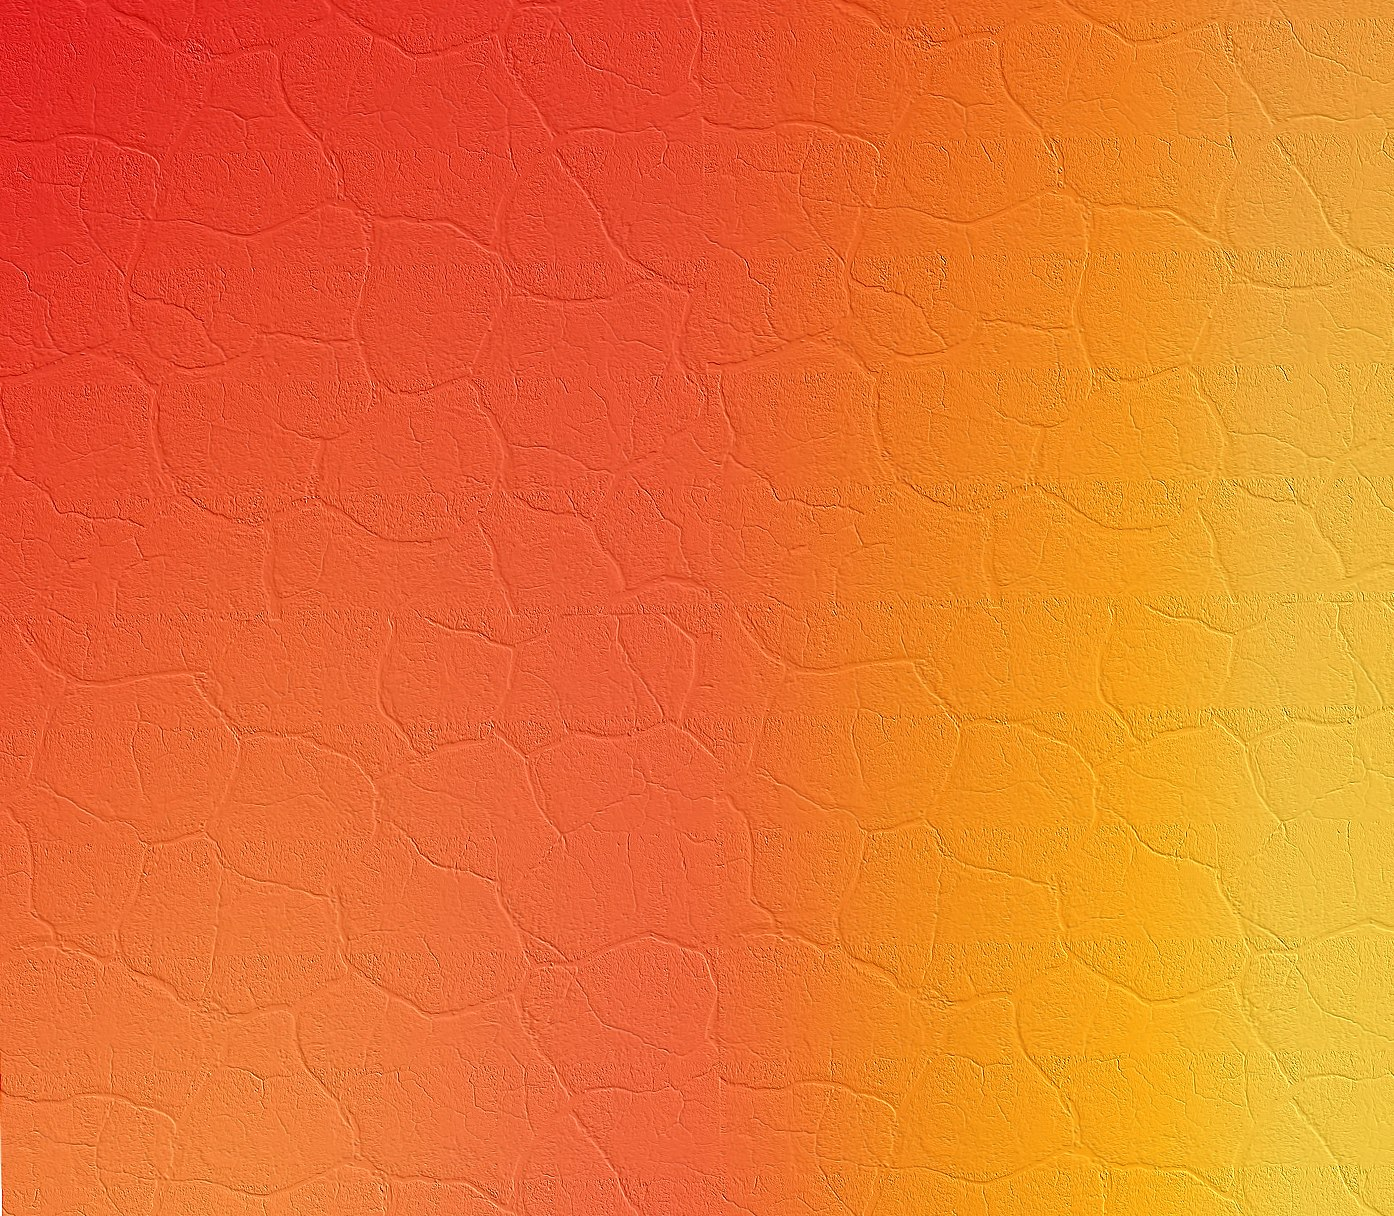 Cracked Orange No1 wallpapers HD quality